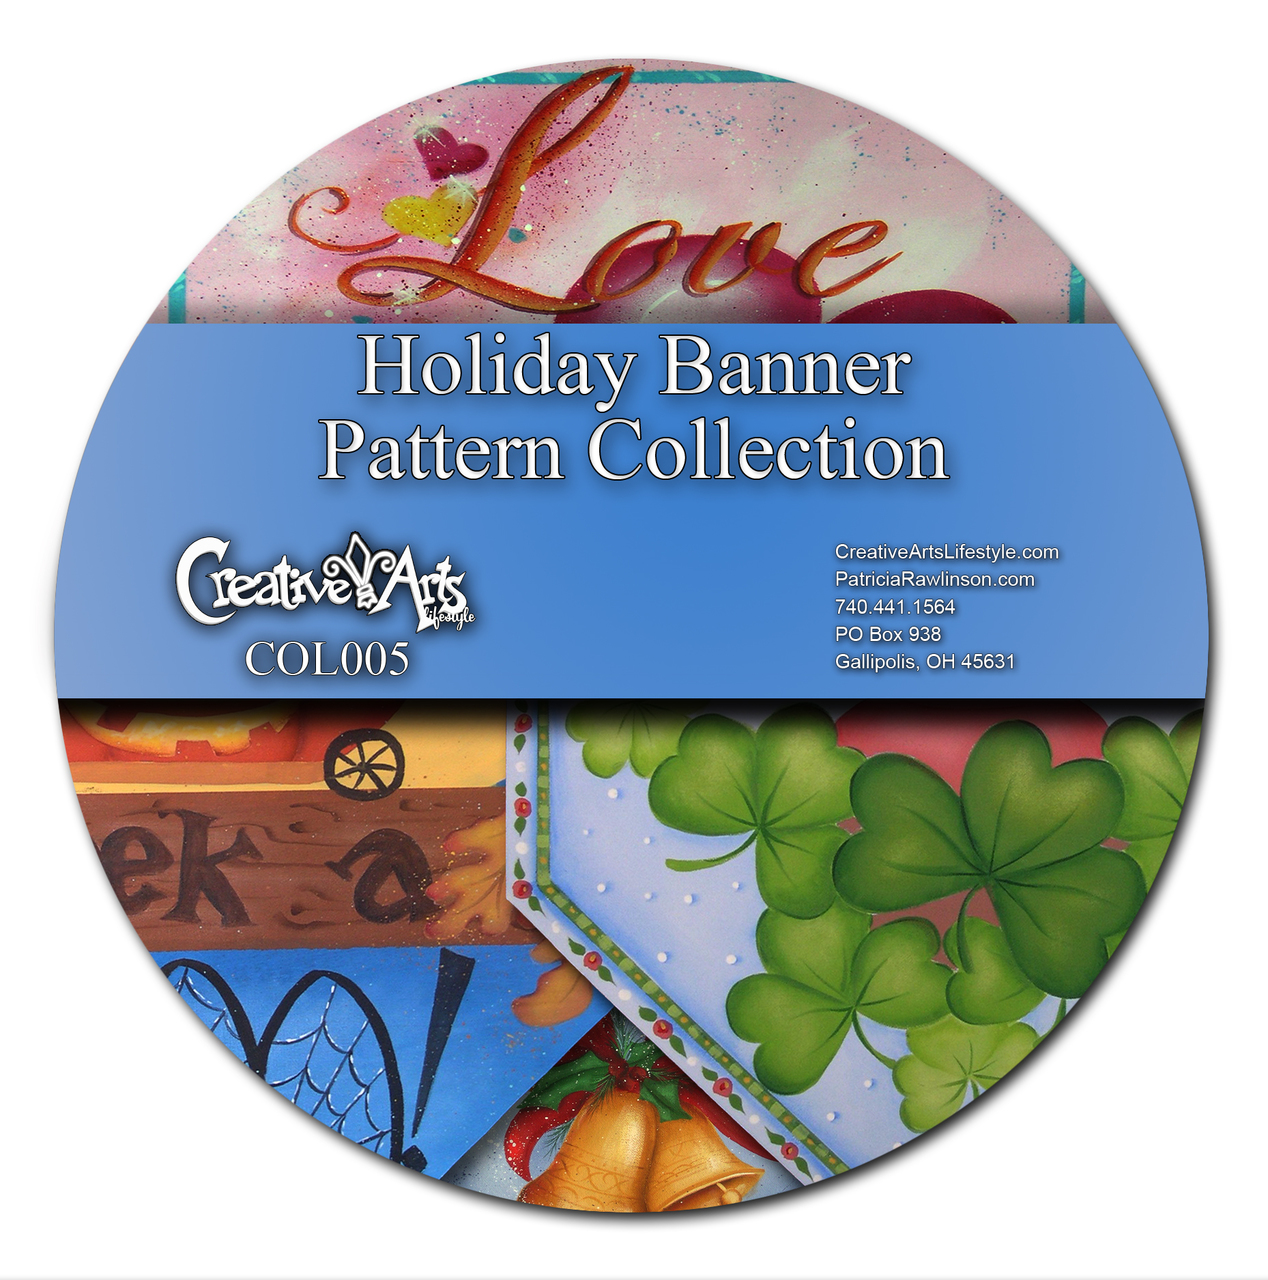 Holiday Banner Patterns Collection